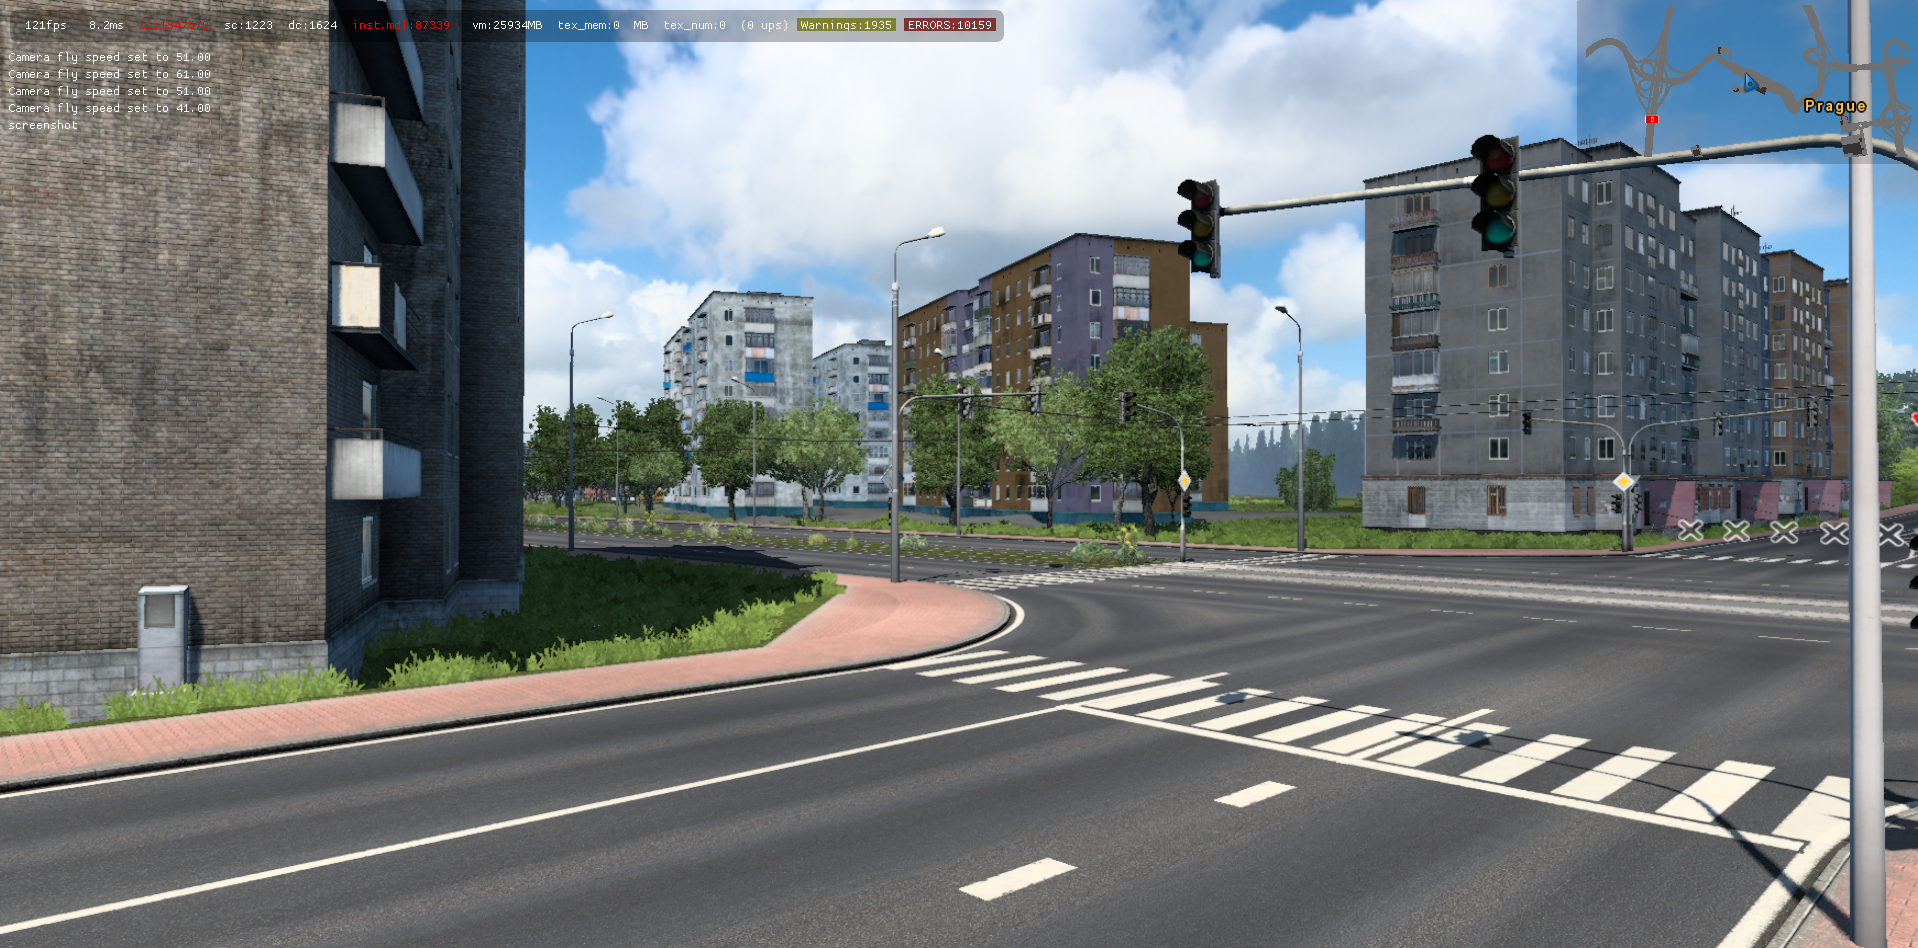 ets2_20210801_003825_00.png